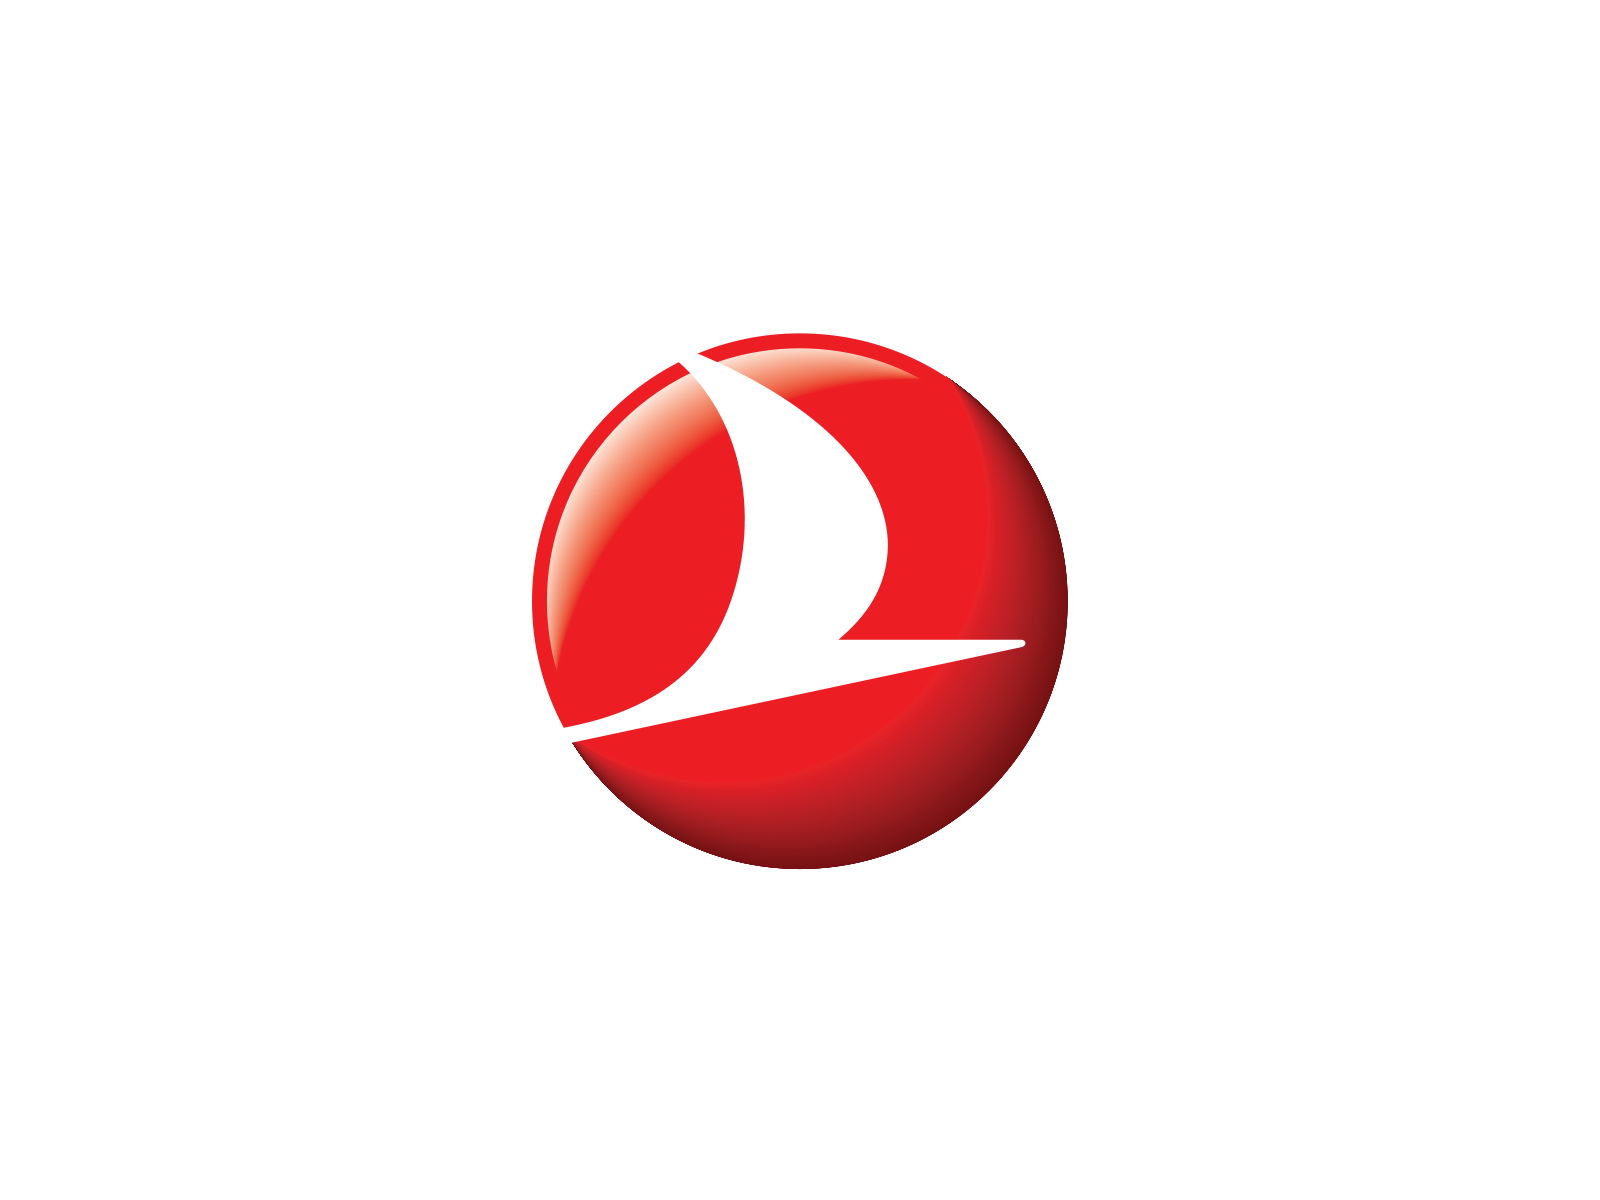 Established in 1933, Turkish Airlines is the national flag carrier ... freeuse download